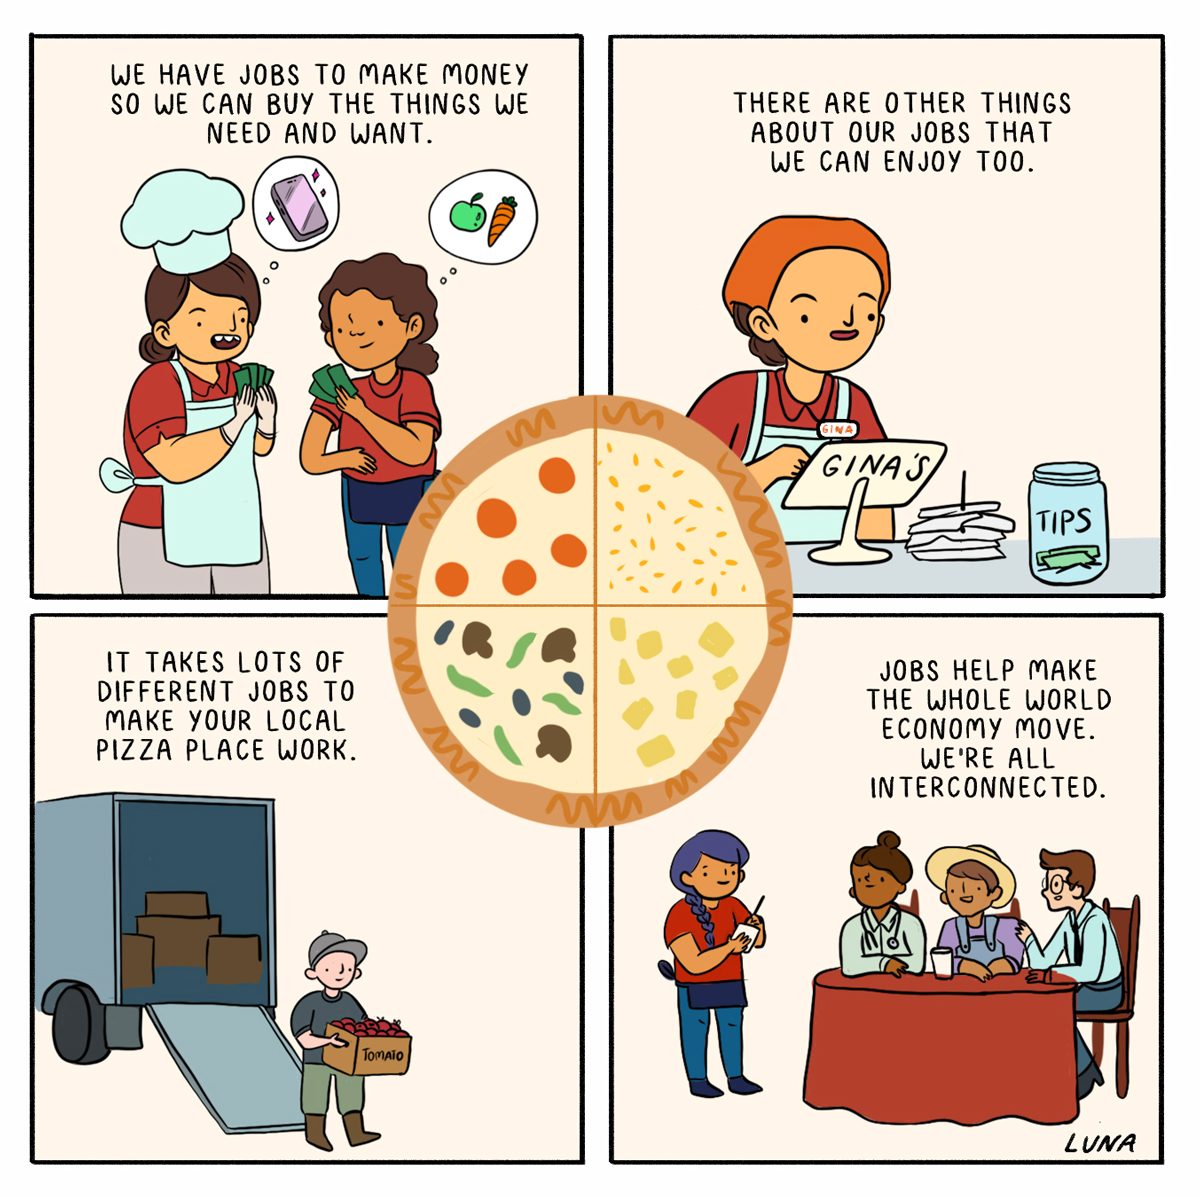 A four panel comic explaining jobs and how they work. They help us make money, but you can enjoy other things about your job too. Your local pizza place, for example, has lots of different jobs that help make it work. Jobs help make the whole global economy move, and we're all interconnected.